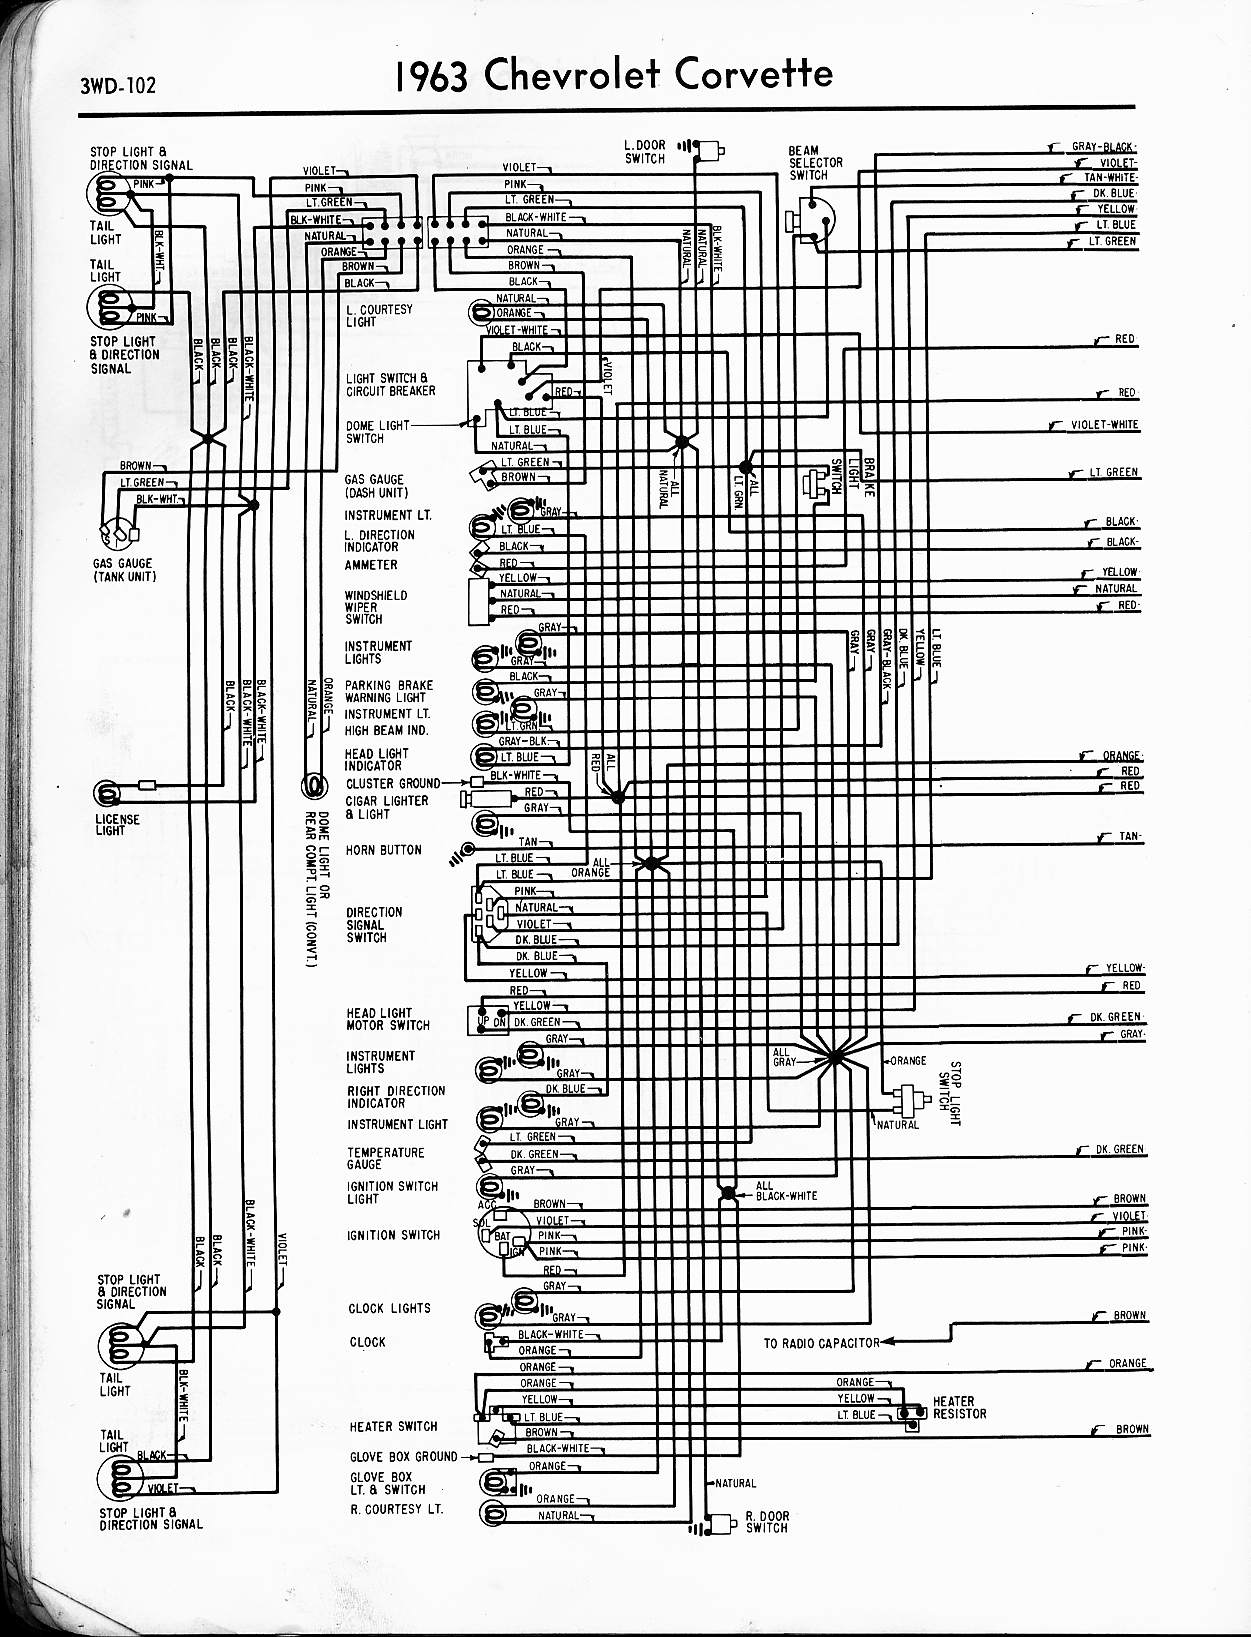 57 - 65 Chevy Wiring Diagrams  Chevrolet Wiring Diagram on chevrolet repair manual, chevrolet remote control, chevrolet exhaust diagram, chevrolet fuel gauge wiring, chevrolet vacuum diagrams, chevrolet owner's manual, chevrolet battery diagram, chevrolet forum, chevrolet ignition wiring, chevrolet midnight edition, chevrolet gassers, chevrolet ignition switch, chevrolet thermostat replacement, chevrolet schematics, chevrolet black reaper, chevrolet babes, chevrolet engine diagram, chevrolet transmission diagram, chevrolet key fob programming, chevrolet cooling system,